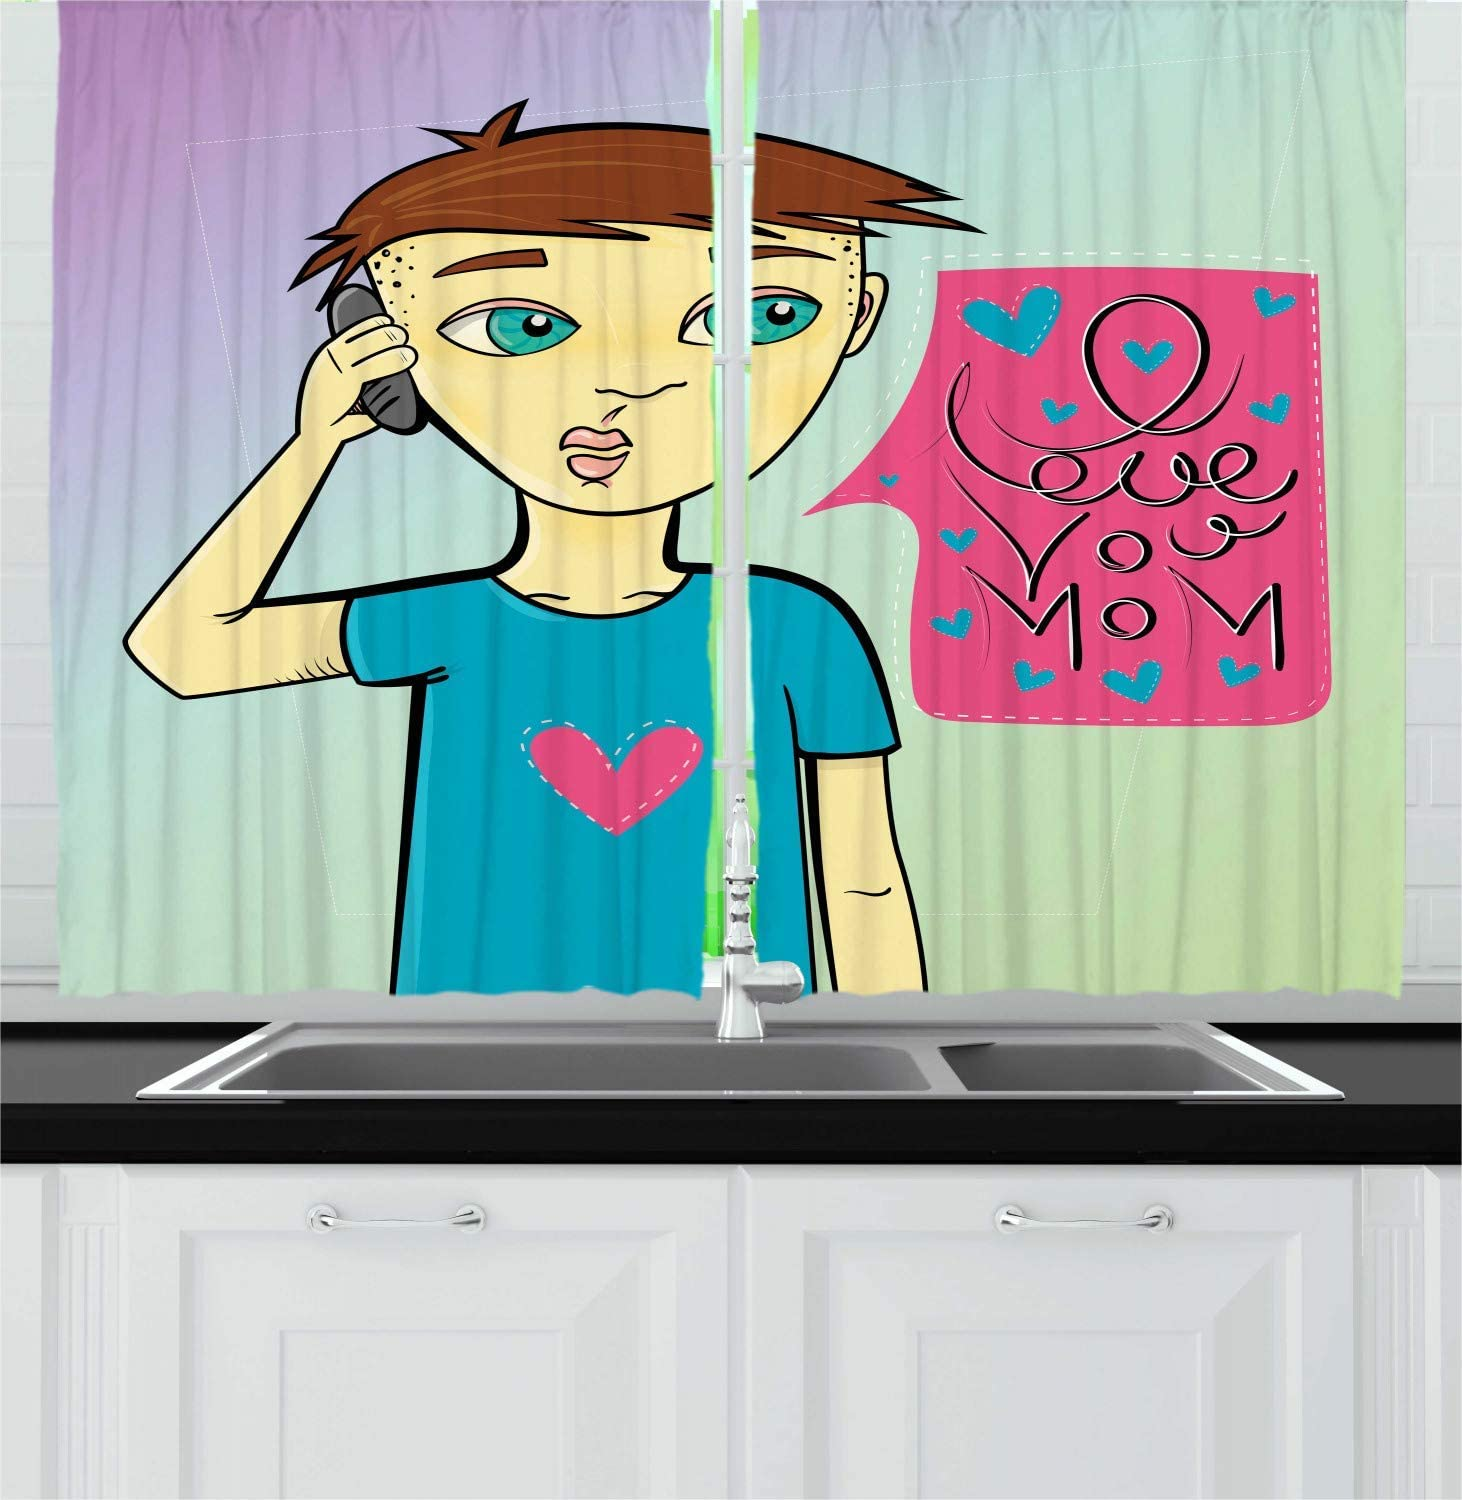 Fafaniq Call Mom Kitchen Curtains Boy Calling His Mother Speech Bubble With I Love You Mom Words Cartoon Design Window Drapes 2 Panel Set For Kitchen Cafe Multicolor 110 74 Inch Amazon Co Uk